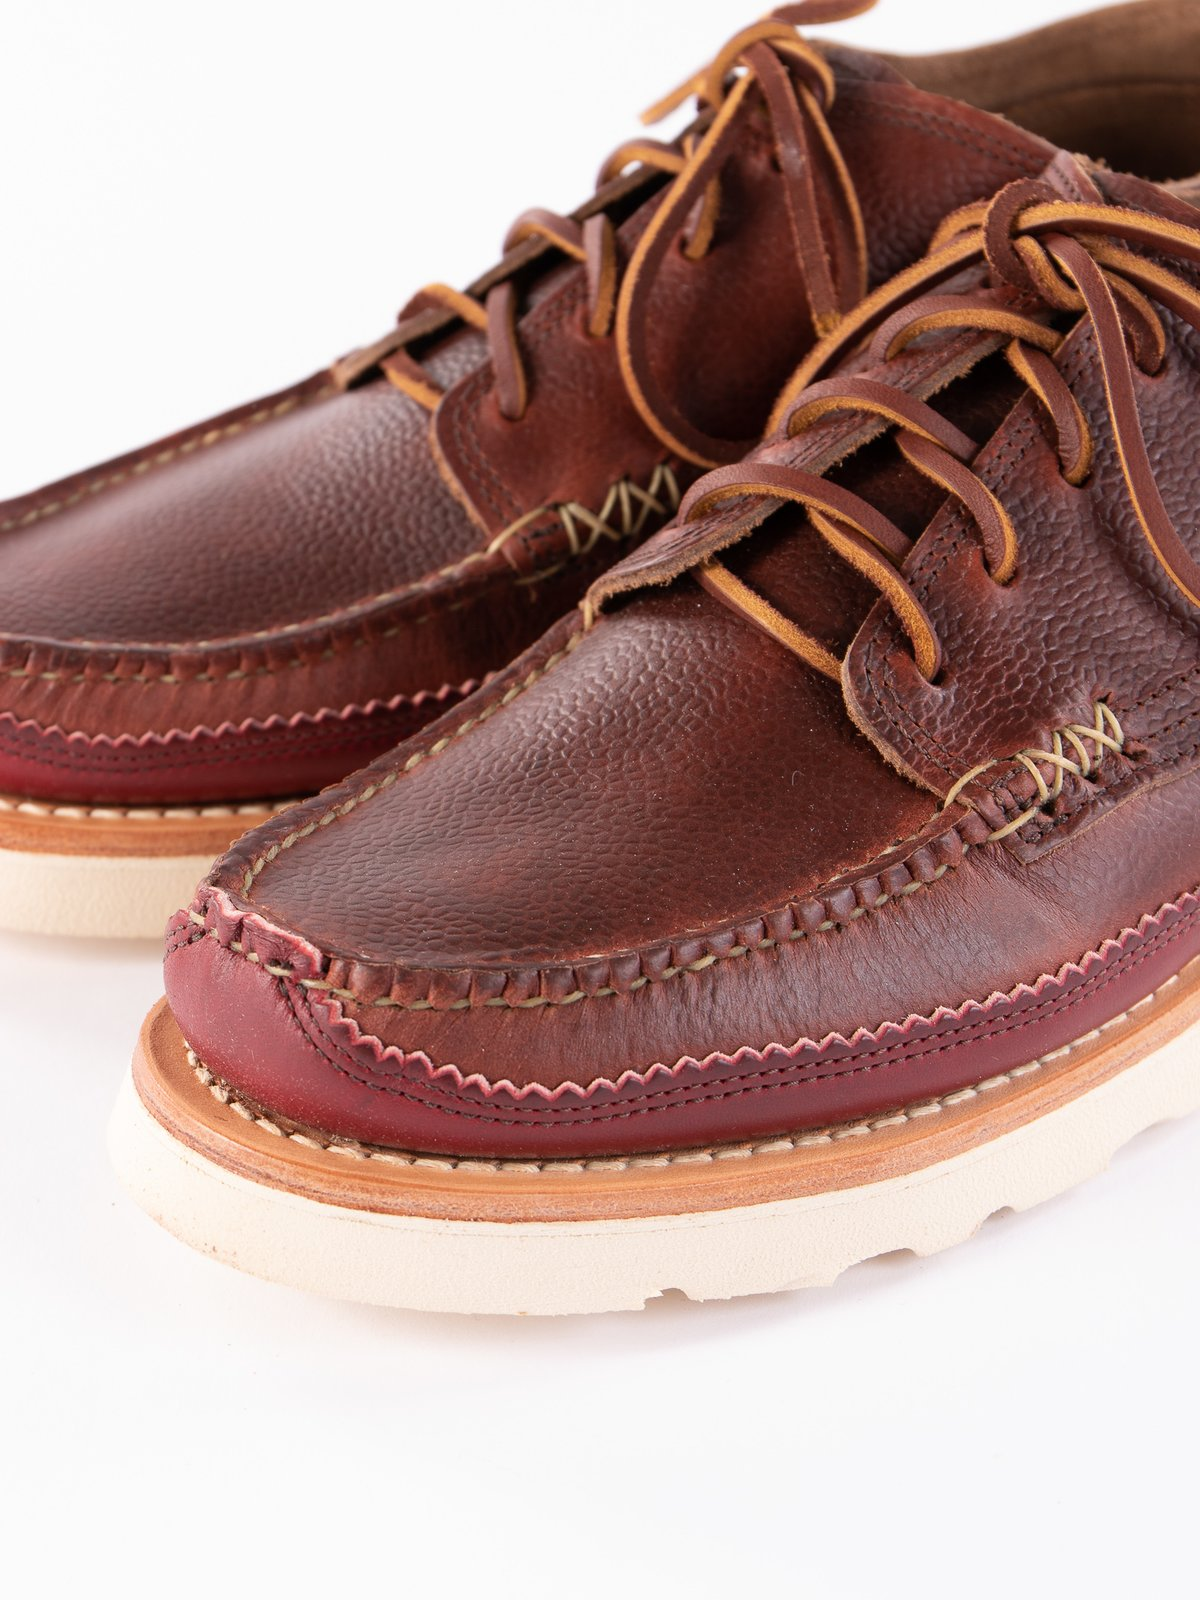 SG Tan x C Red Maine Guide Ox Exclusive - Image 3